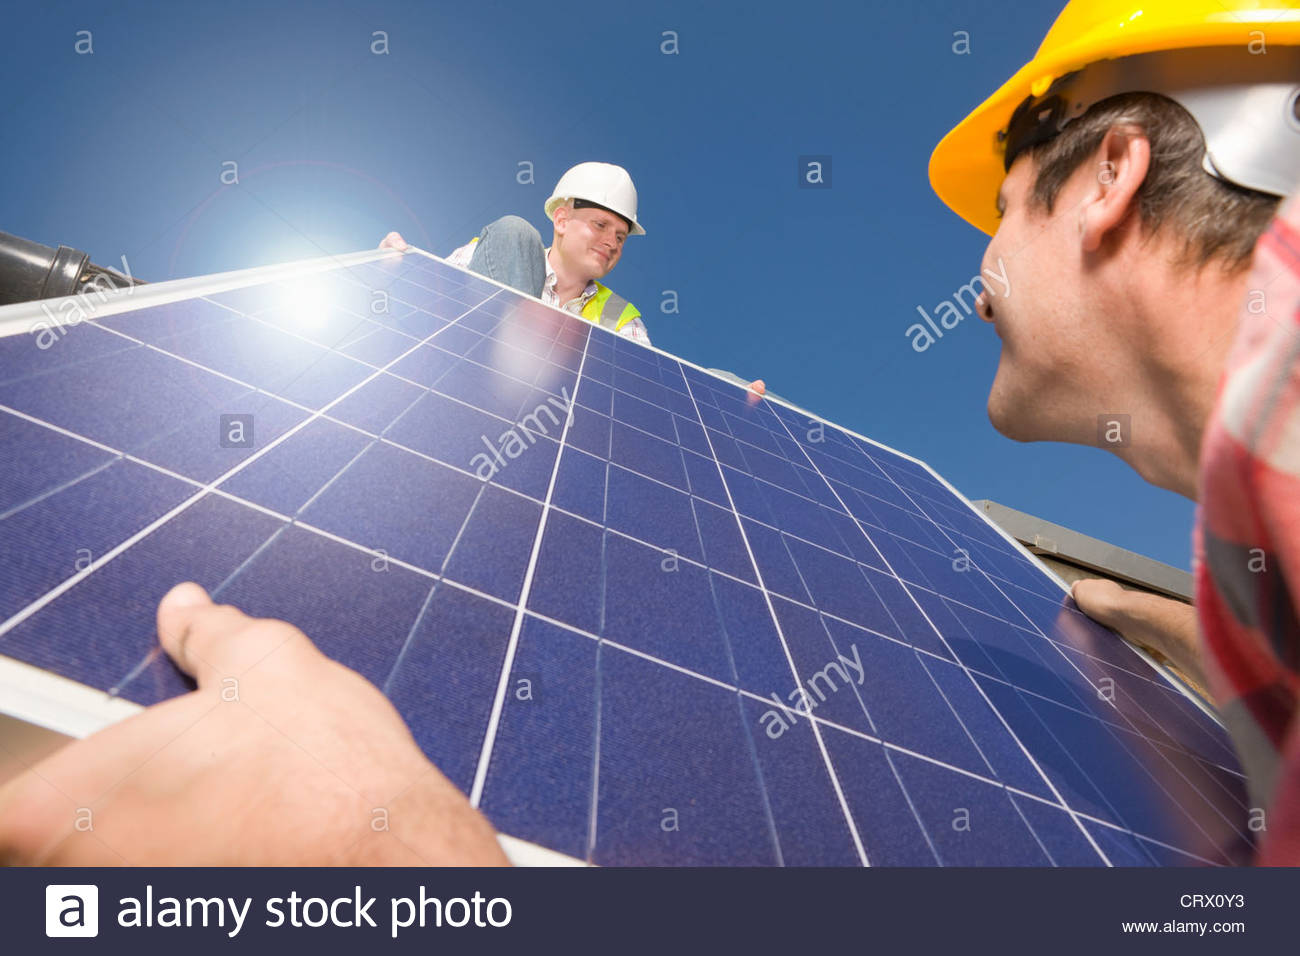 Engineers lifting solar panel onto roof - Stock Image